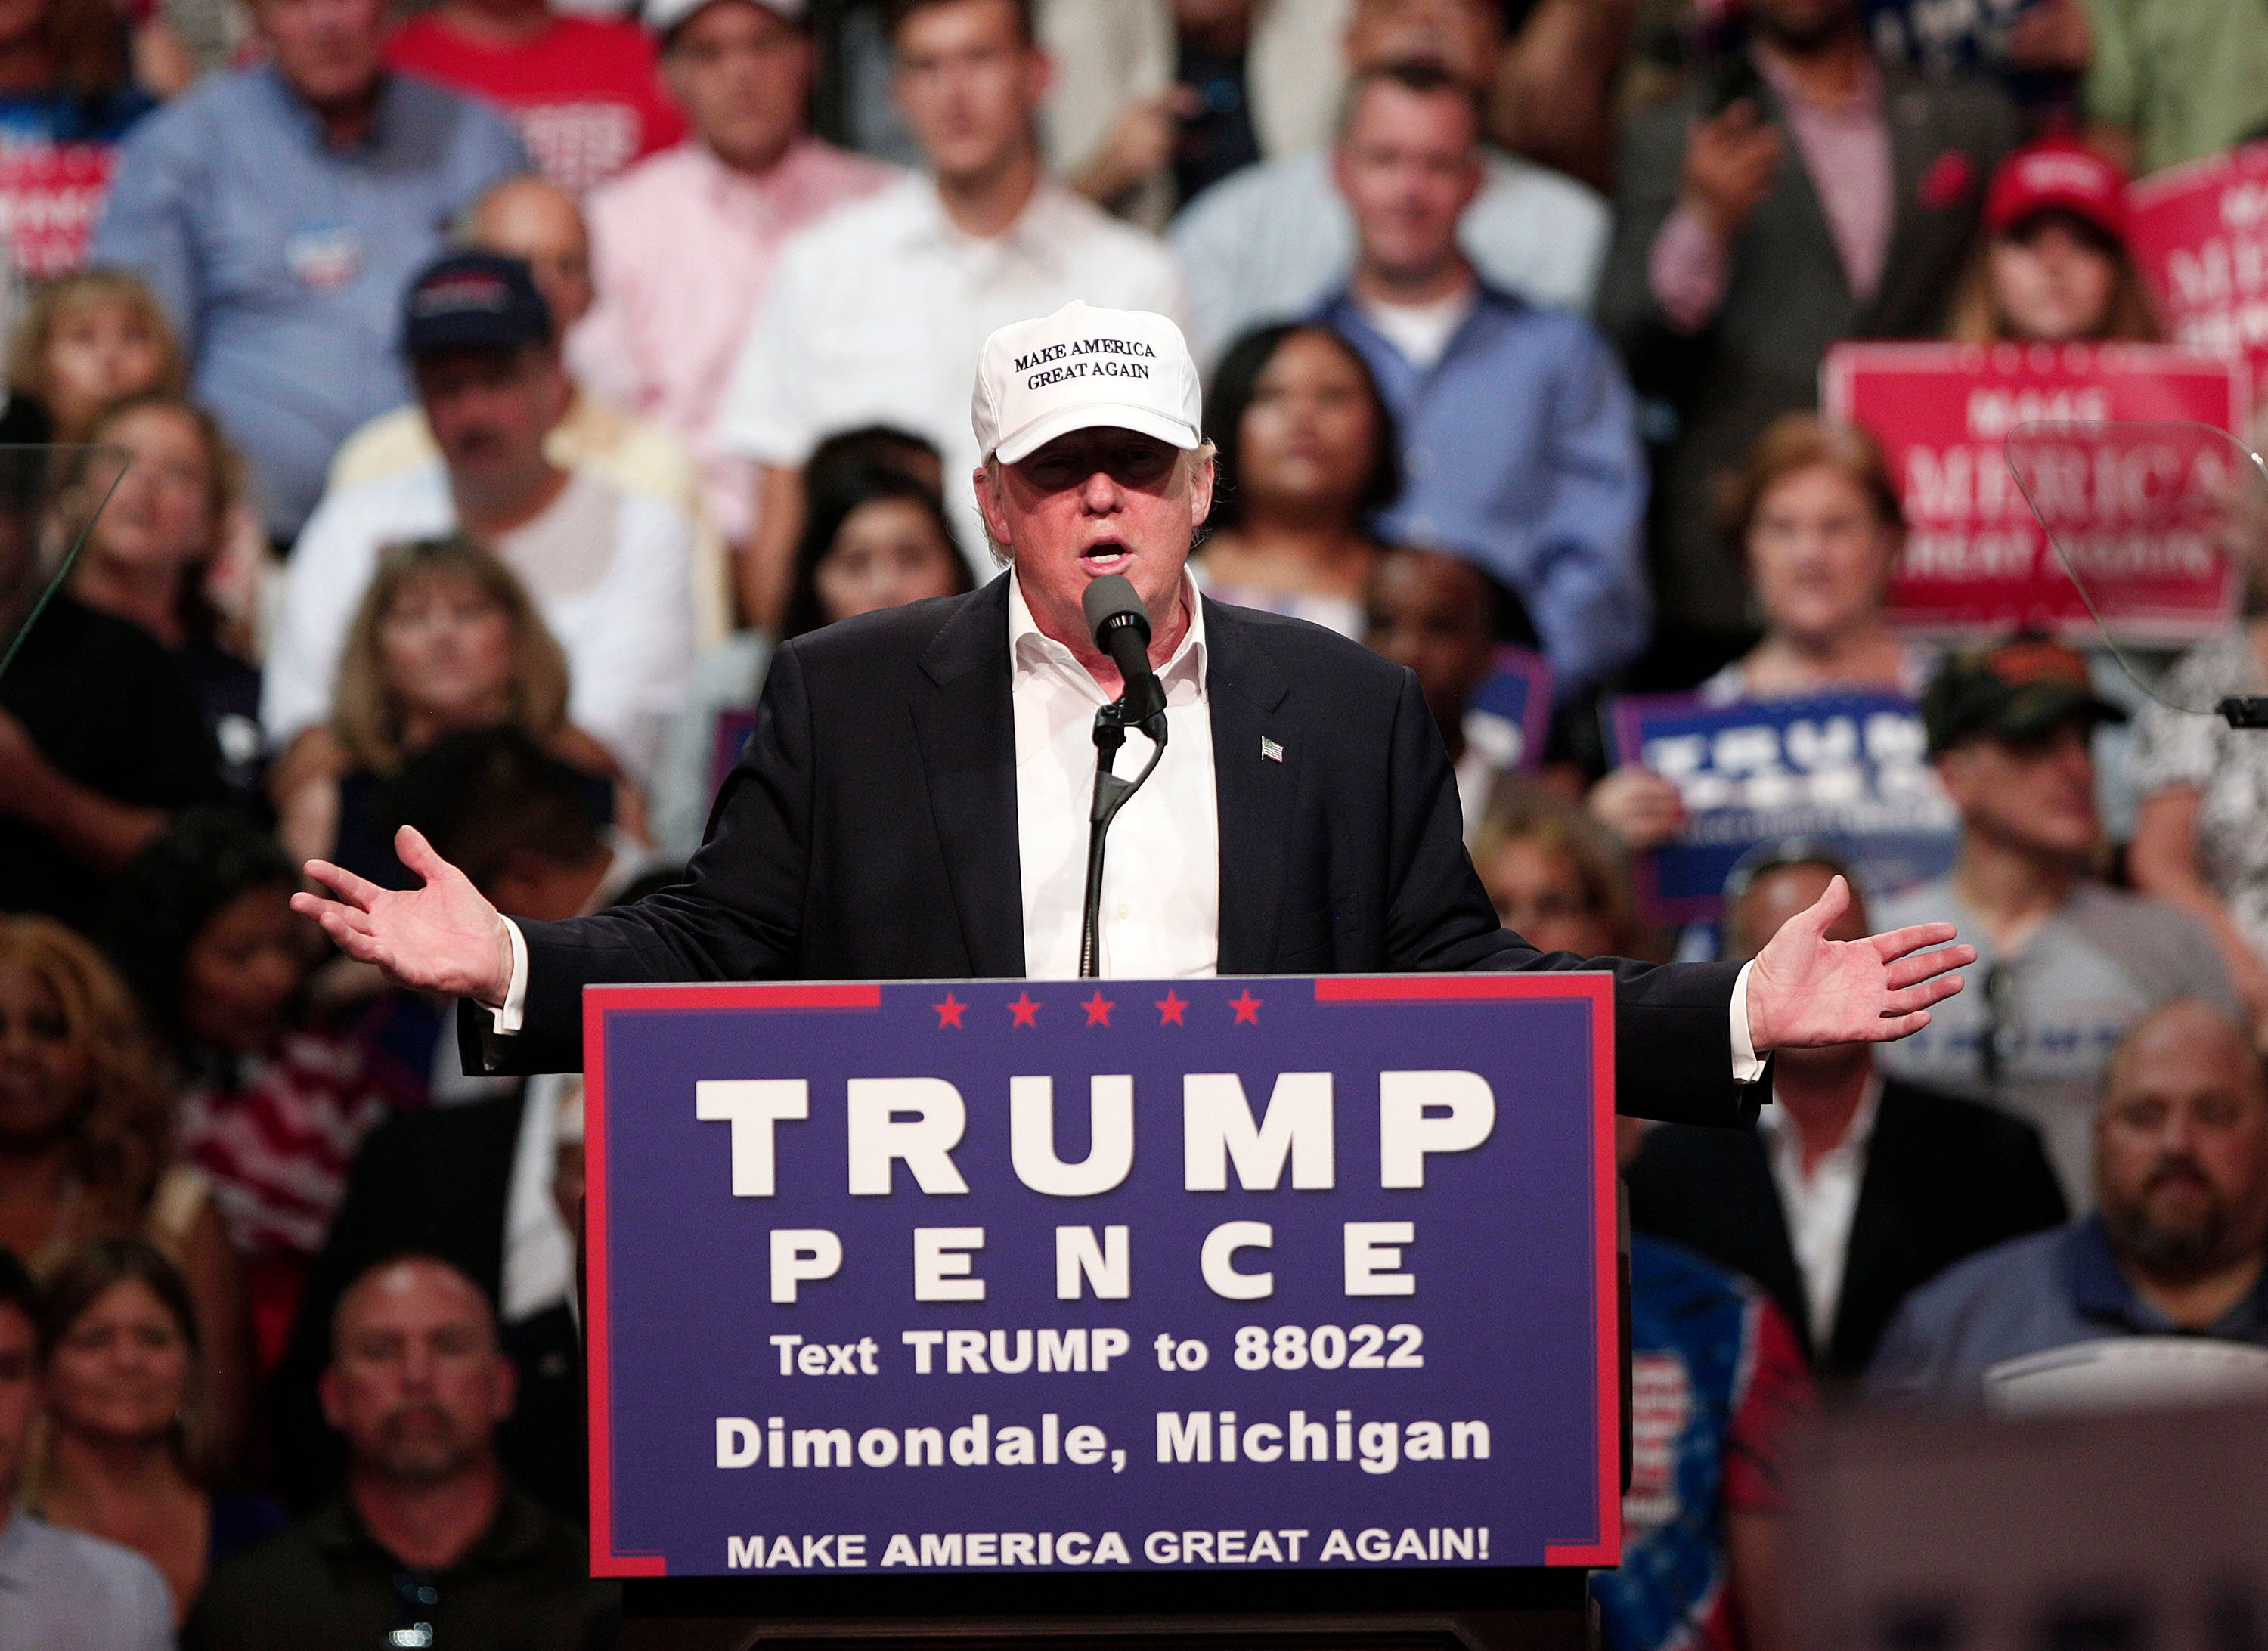 Donald Trumphas a history of treating racial groups as